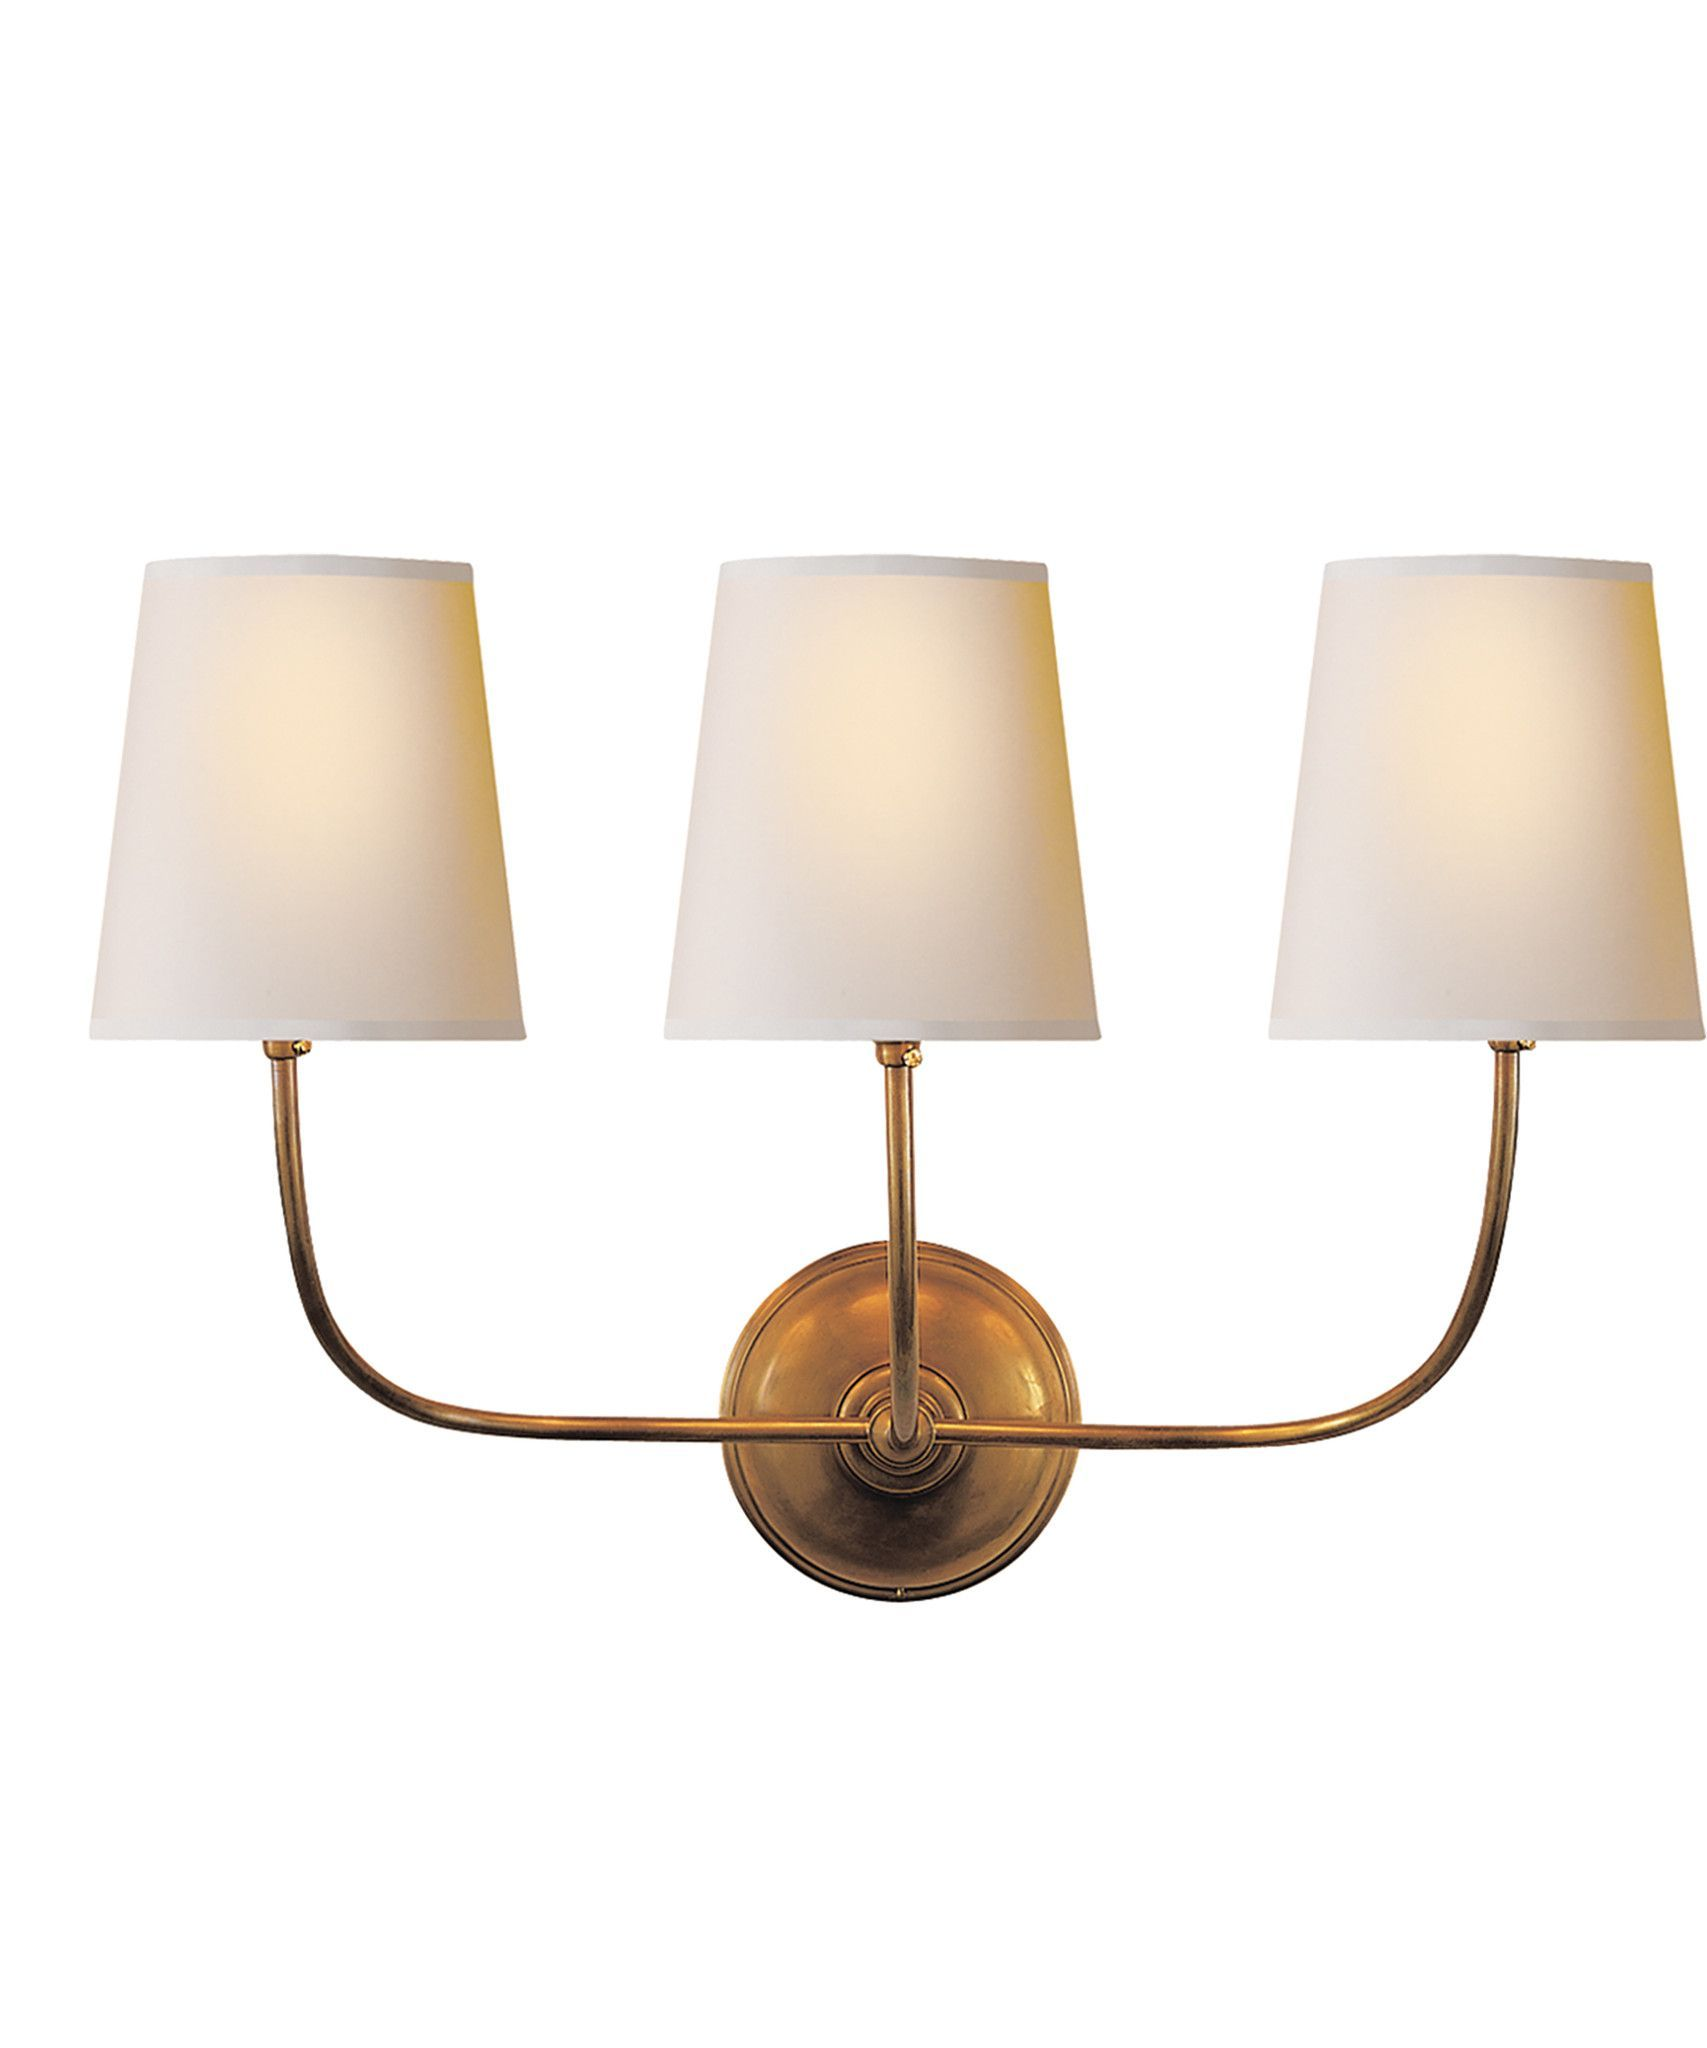 perfect bedroom wall sconces. Modern Wall Sconces Bedroom Plug In Sconce Lighting,dining Room Lights Small Mounted Lamps,antique Brass Outdoor Light Fixtures Barnwood Sconce. Perfect E